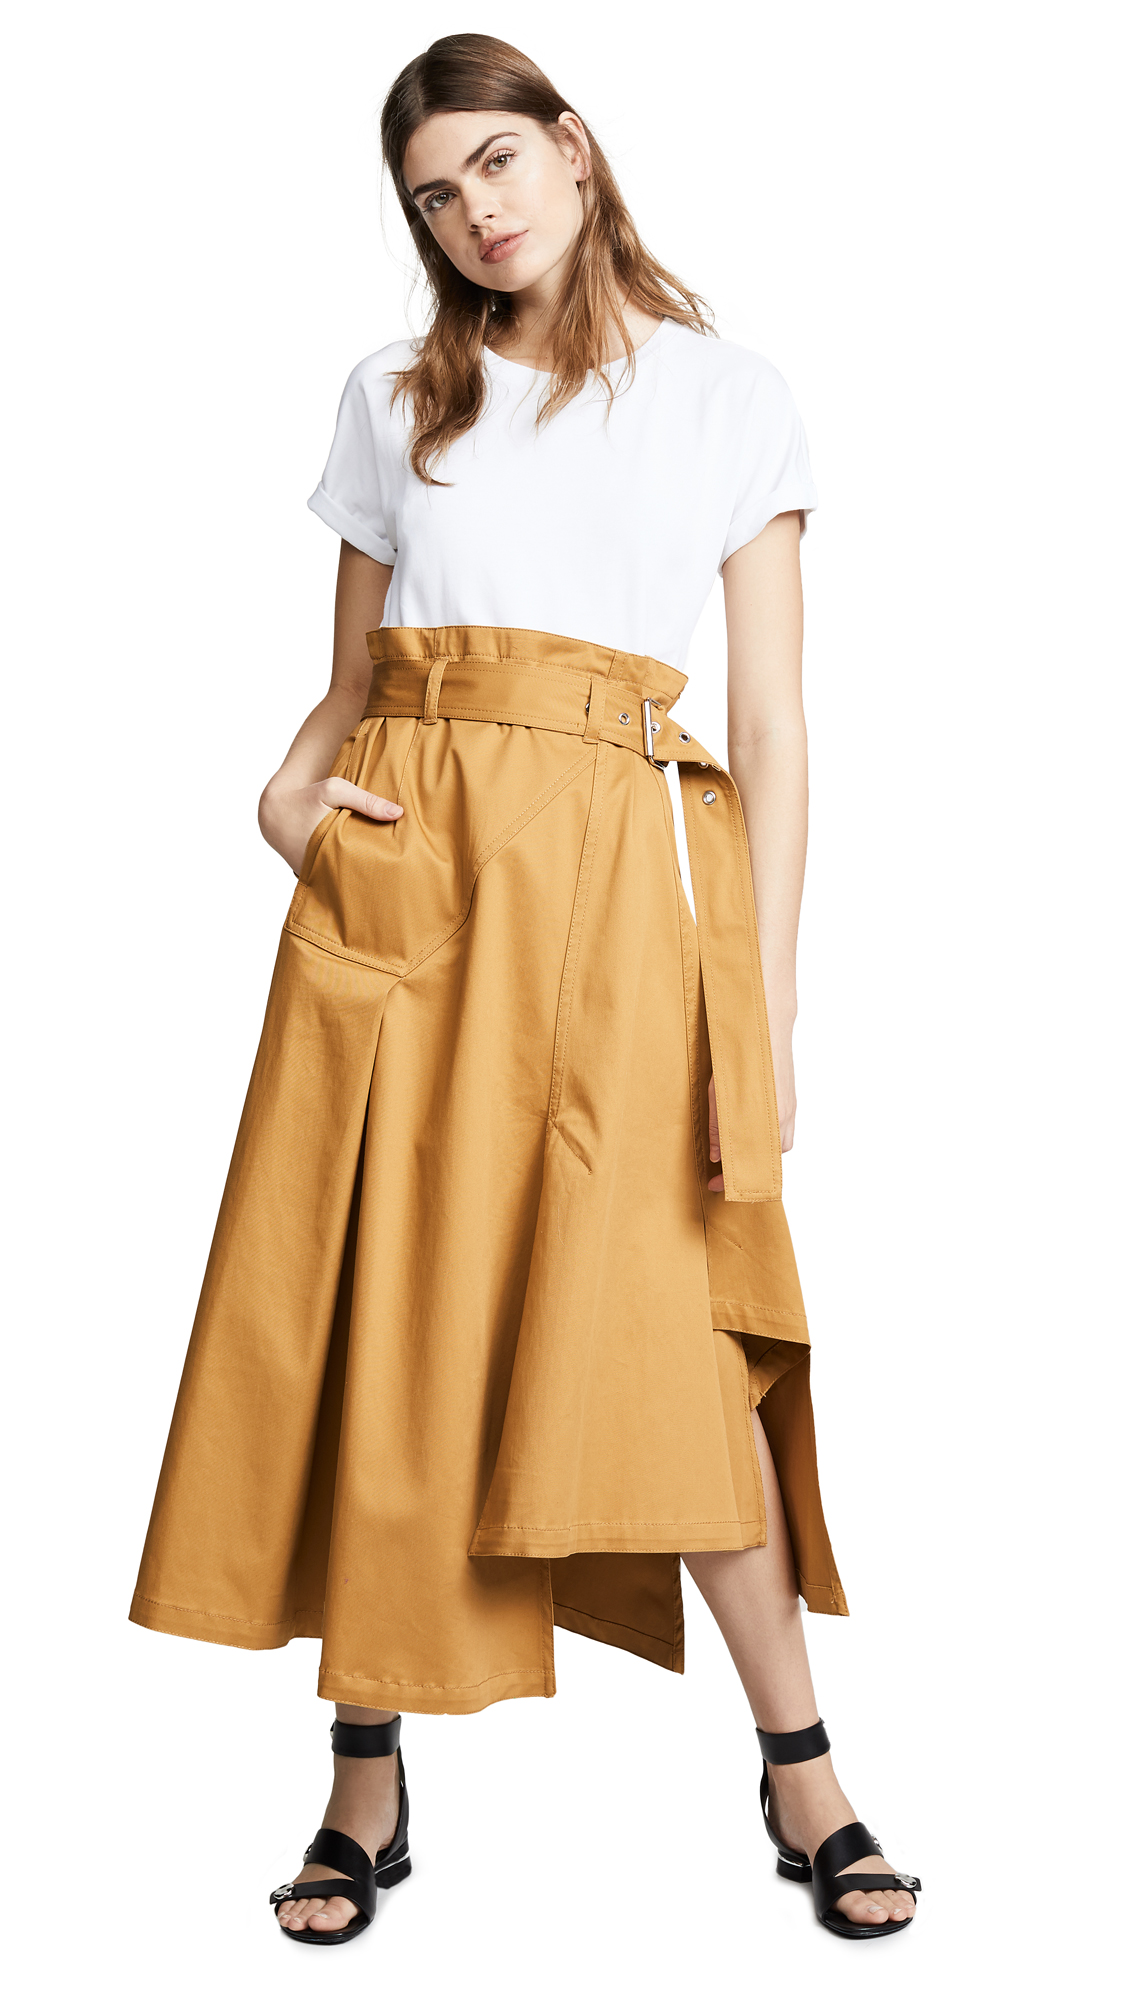 3.1 Phillip Lim Dress with Jersey Tee - White/Butterscotch